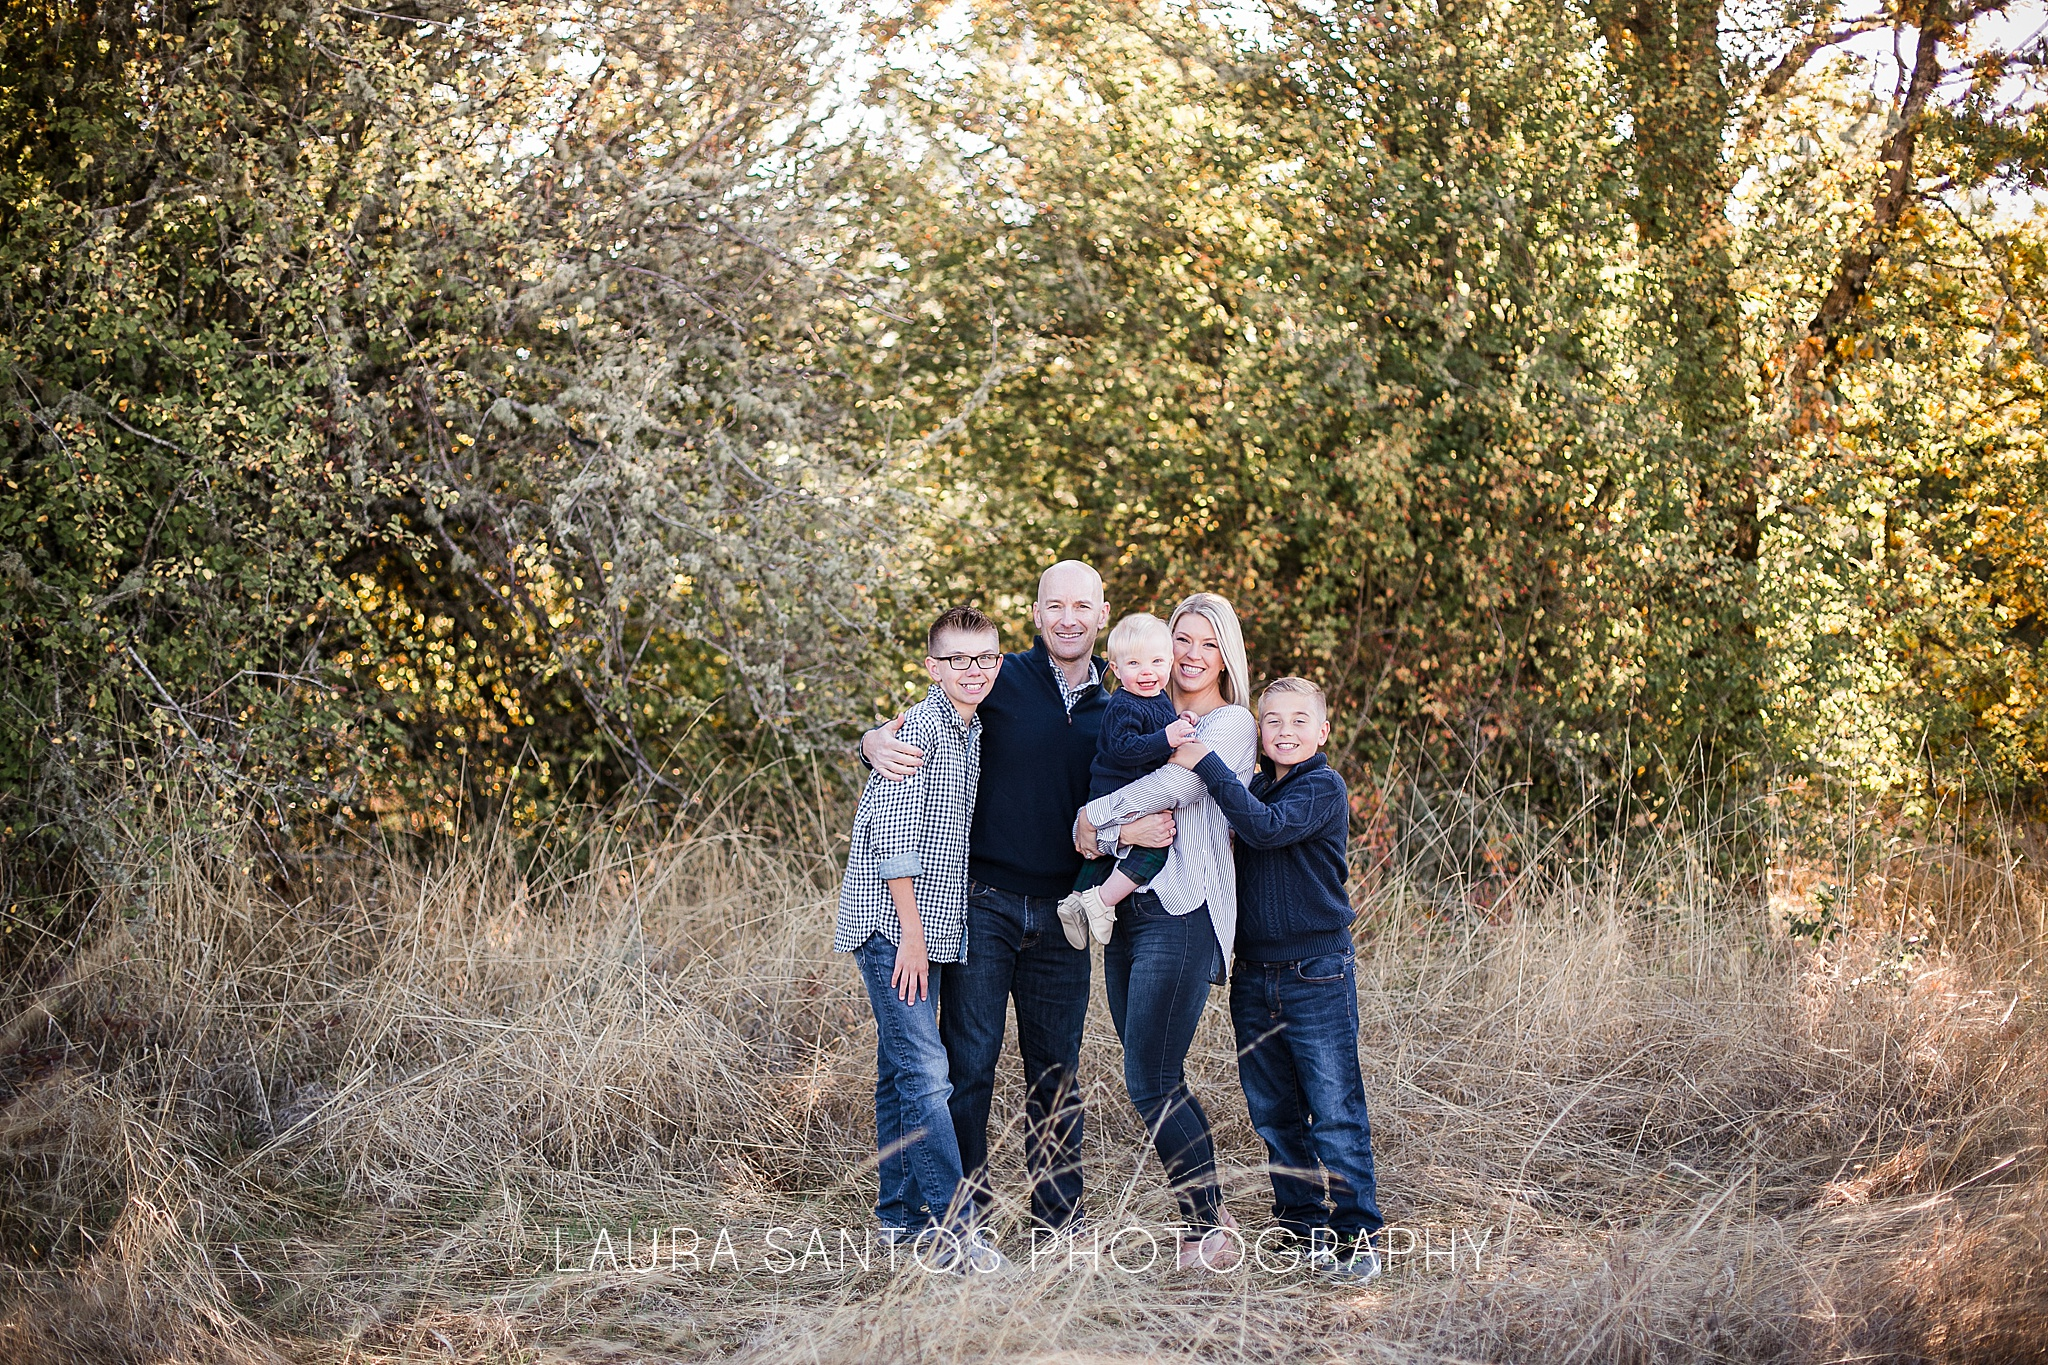 Laura Santos Photography Portland Oregon Family Photographer_0611.jpg